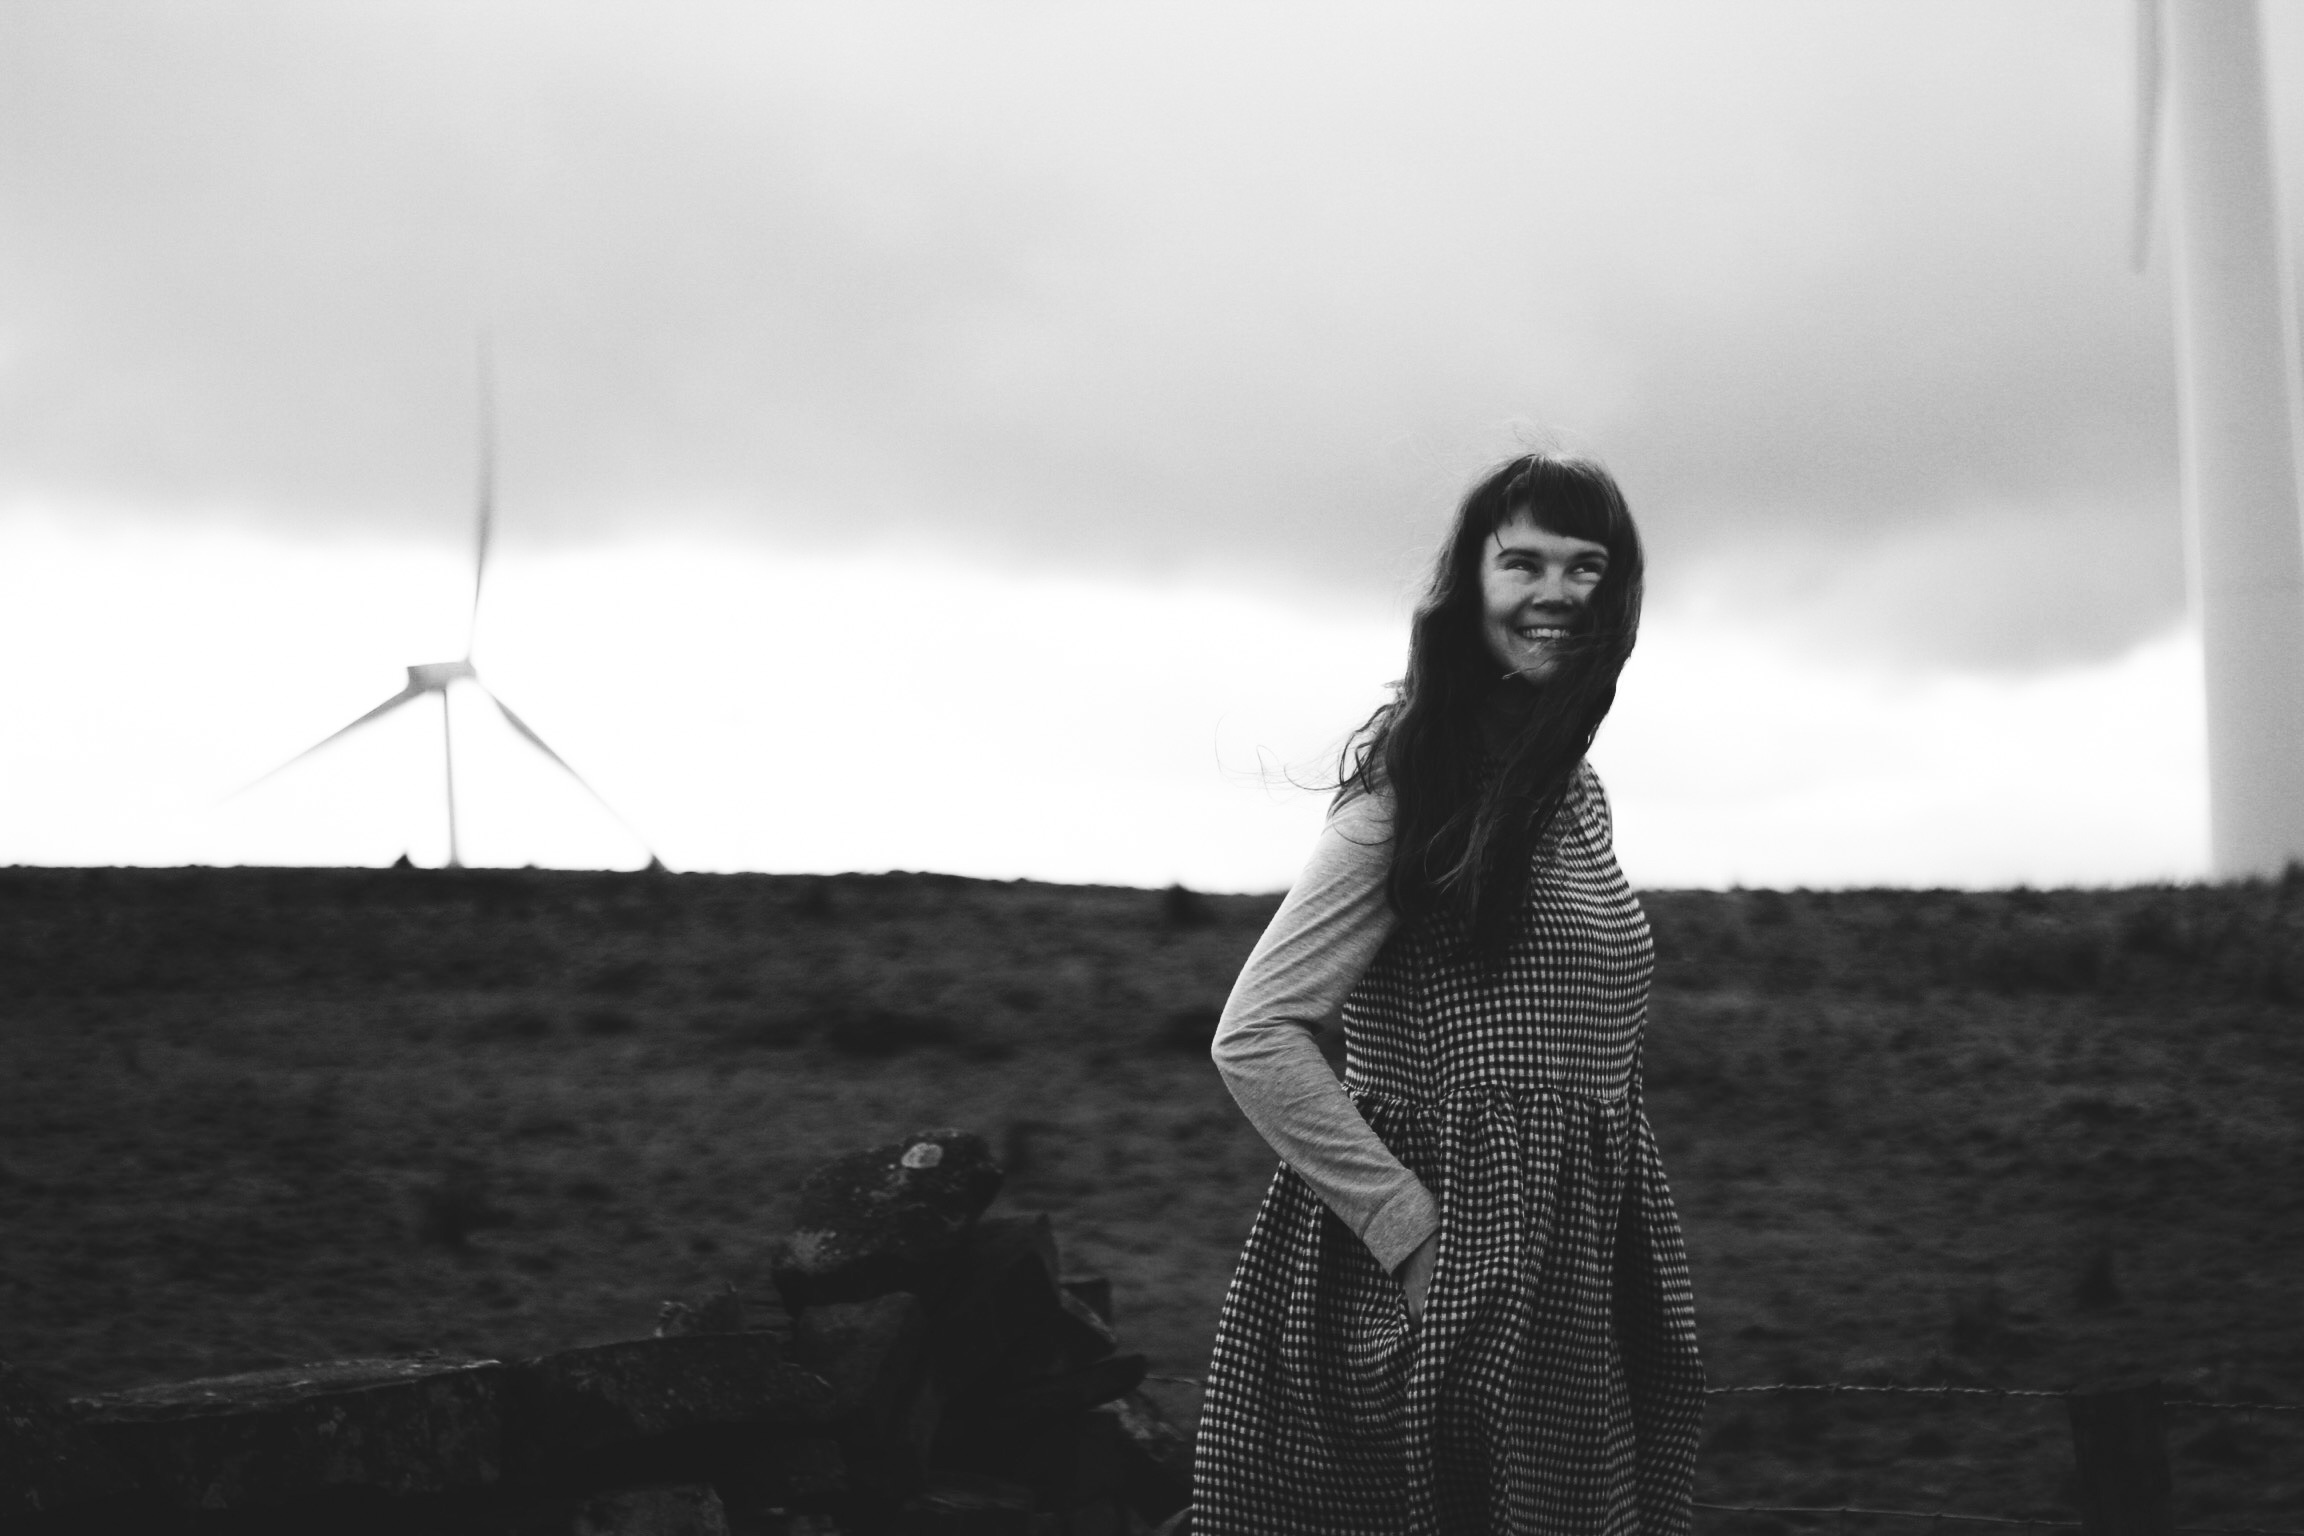 Black and White, Girl on moor wearing gingham dress